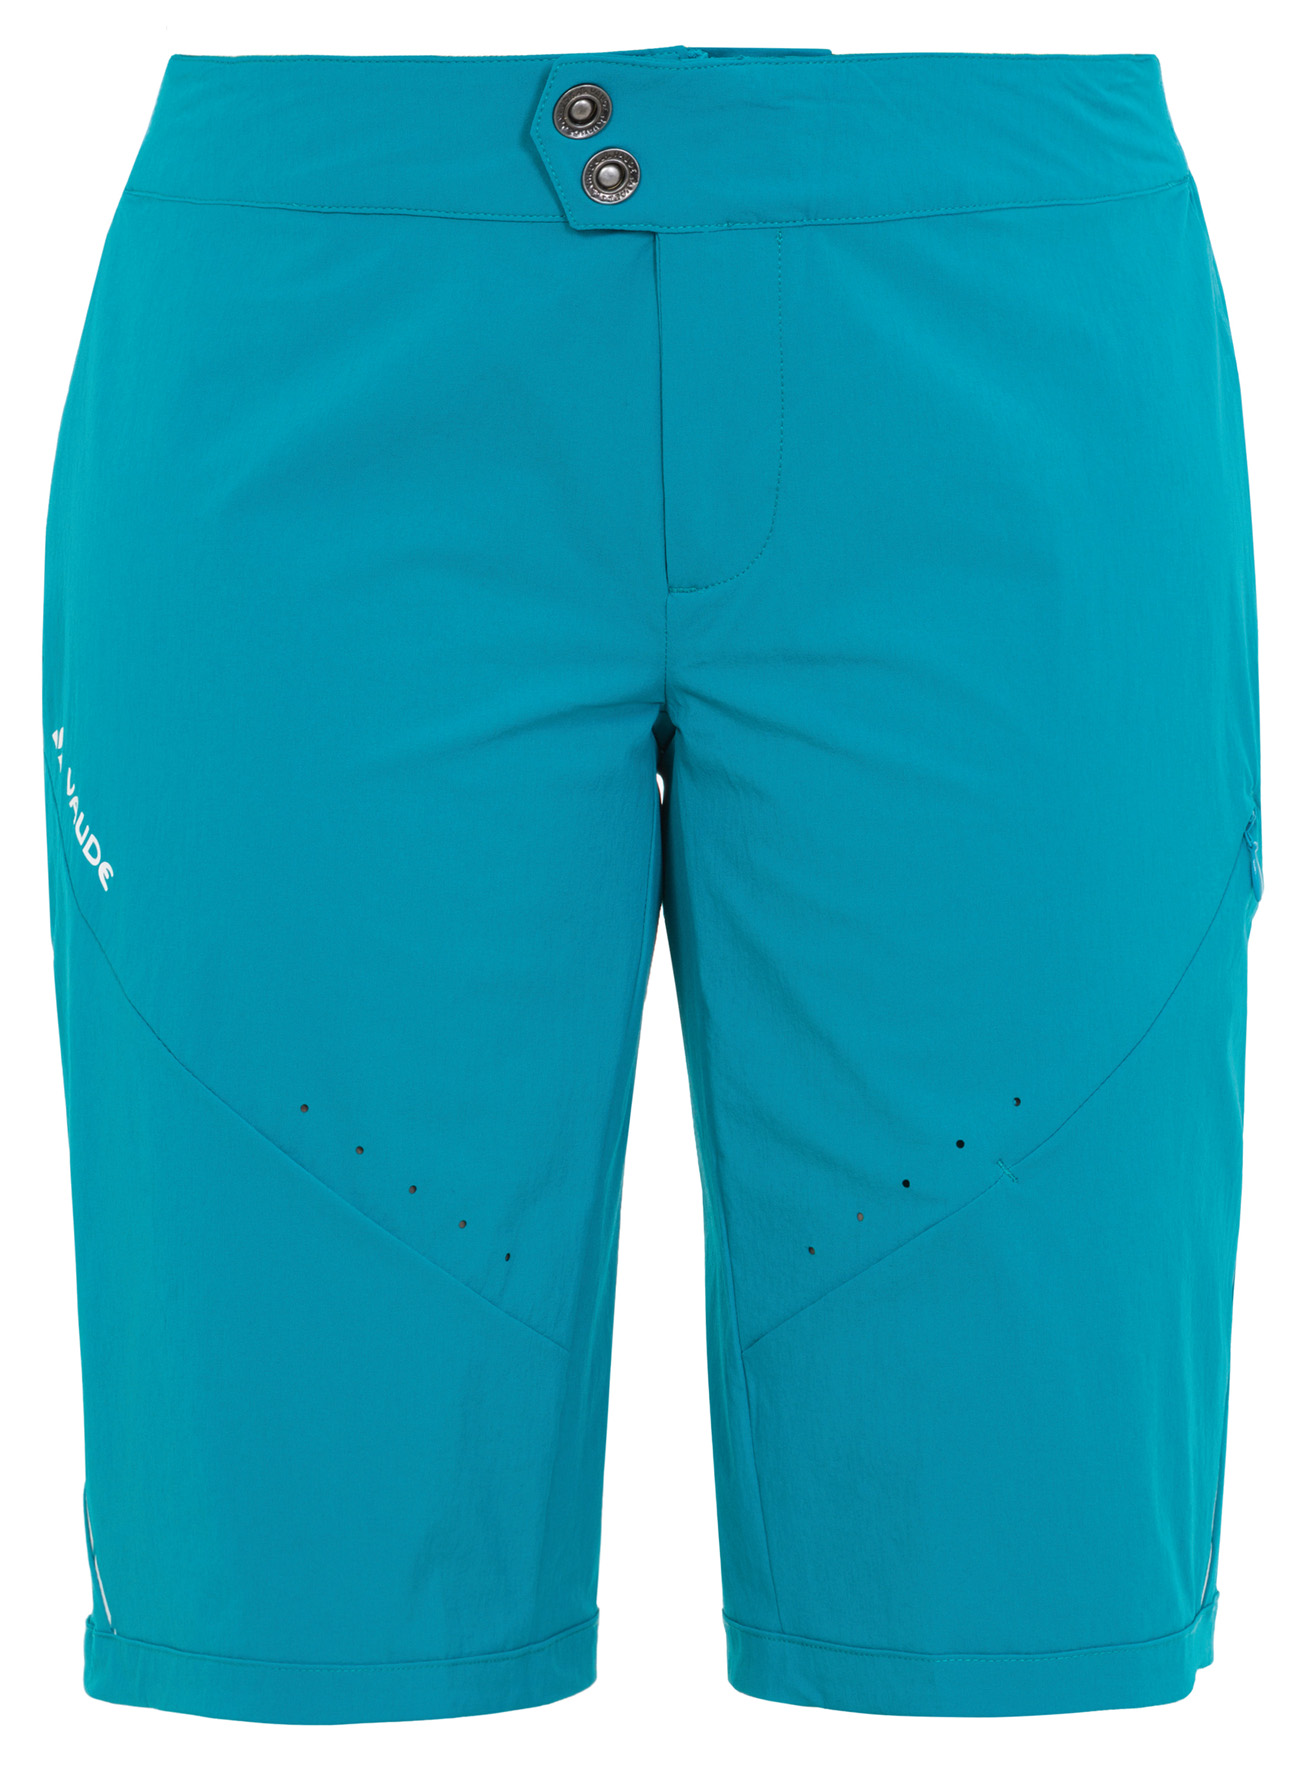 Women´s Topa Shorts alpine lake Größe 36 - schneider-sports